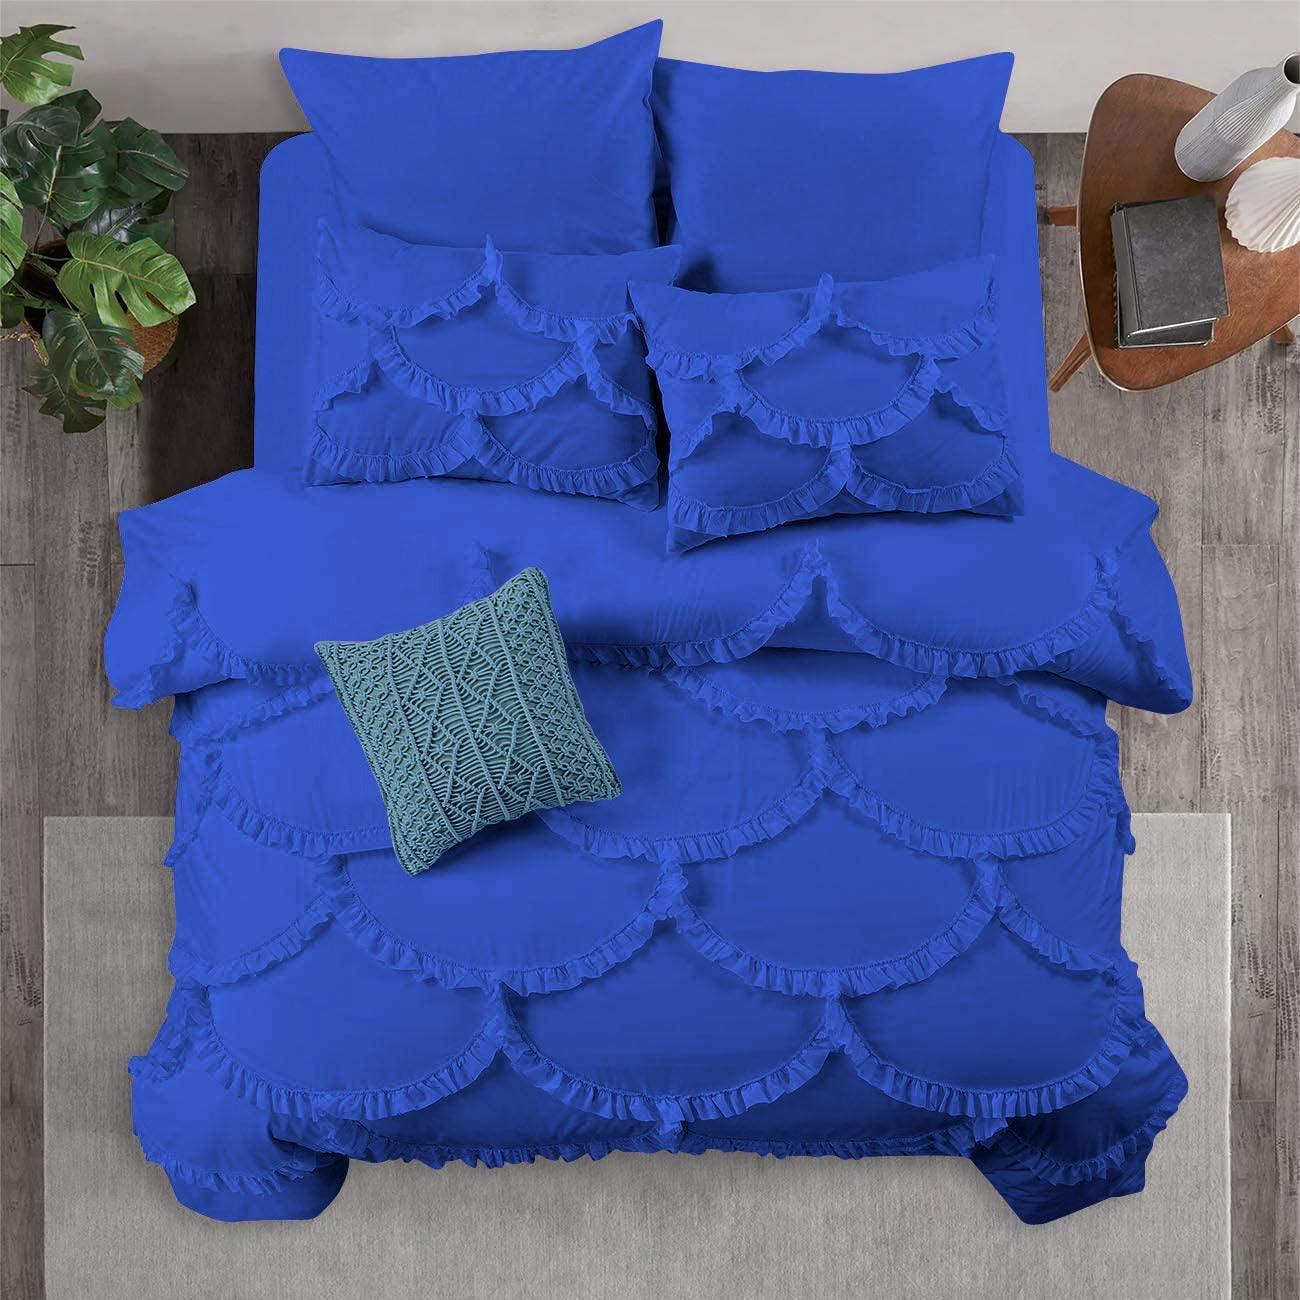 PG Beddings 1 Piece Duvet w Cheap sale Cover Chic Sirena Popular overseas Shabby